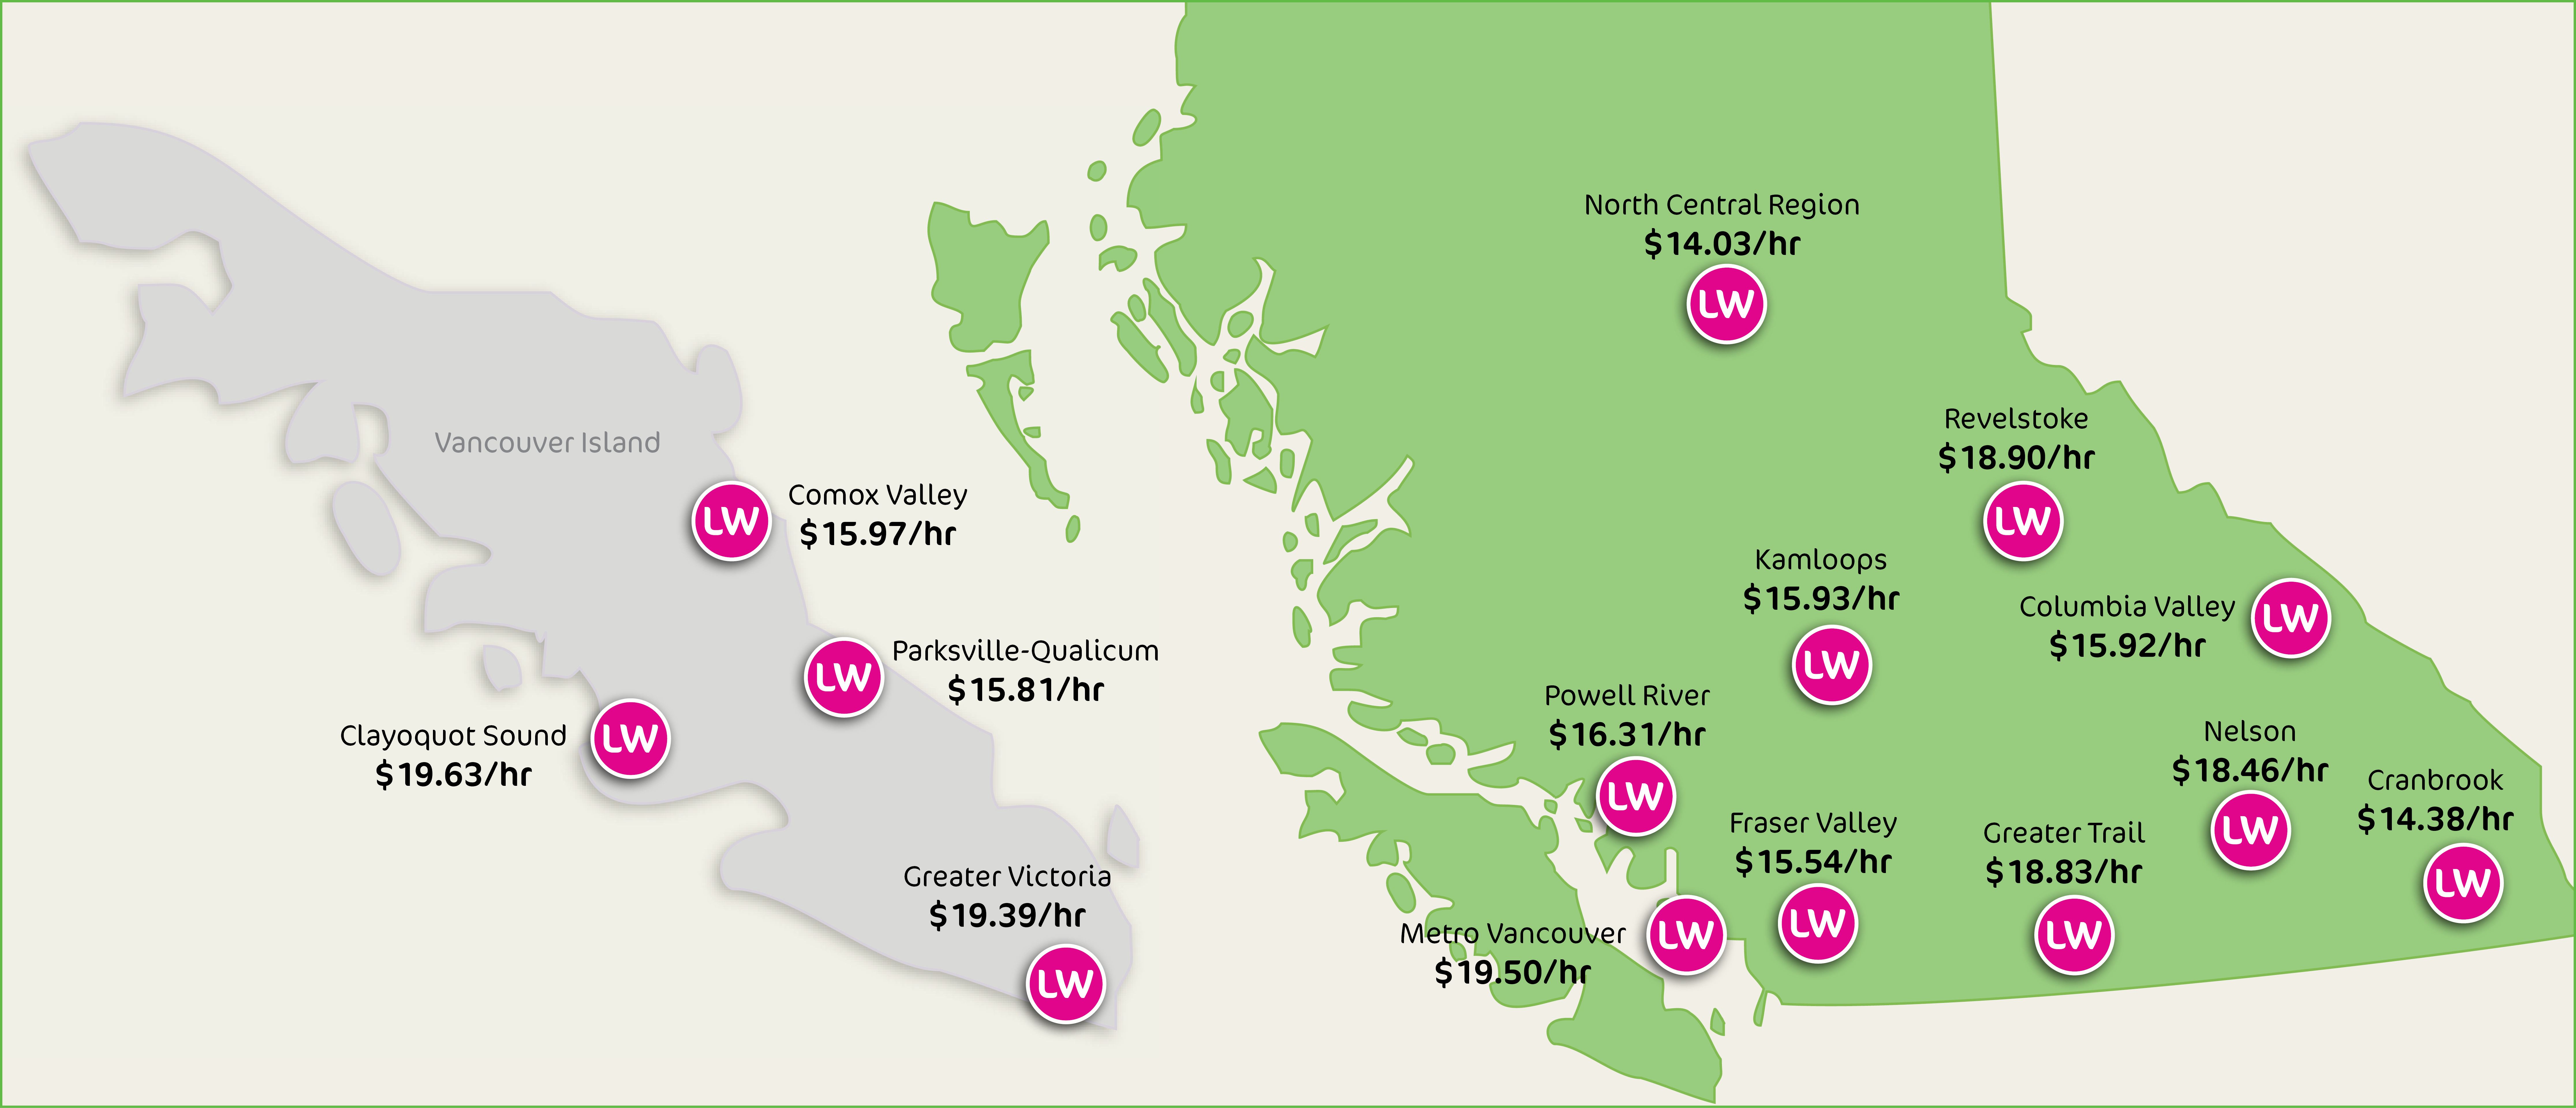 Living Wages in BC and Canada - Living Wage for Families ... on alaska map, alberta map, calgary map, london map, or map, manitoba map, india map, surrey map, british columbia map, brazil map, costa rica map, nova scotia map, maryland map, ks map, united kingdom map, hungary map, madagascar map, de map, ontario map, vancouver map,